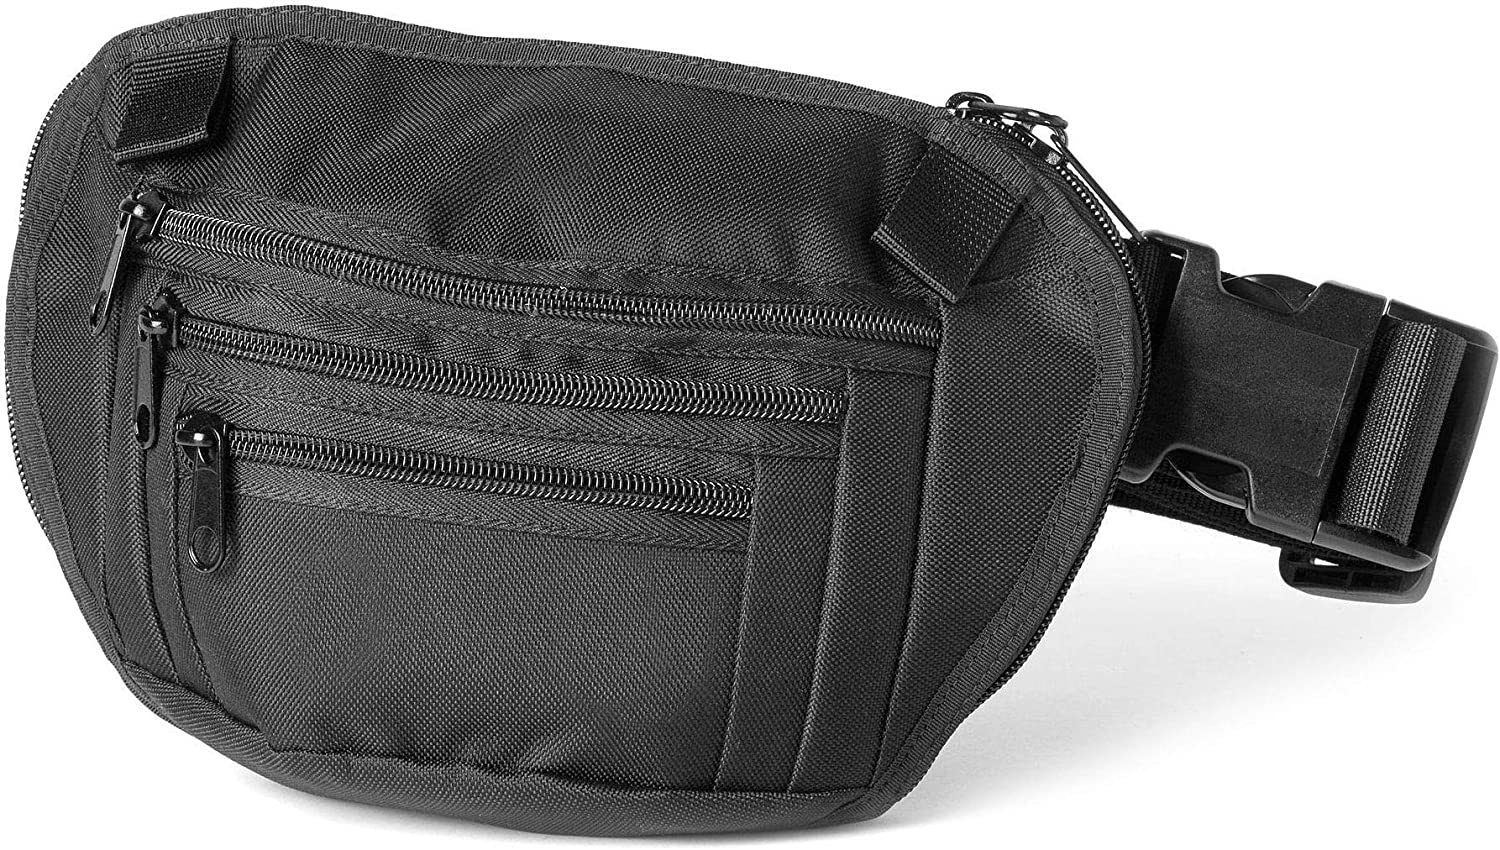 Craft Holsters Fanny Pack with Concealed Holster (522)